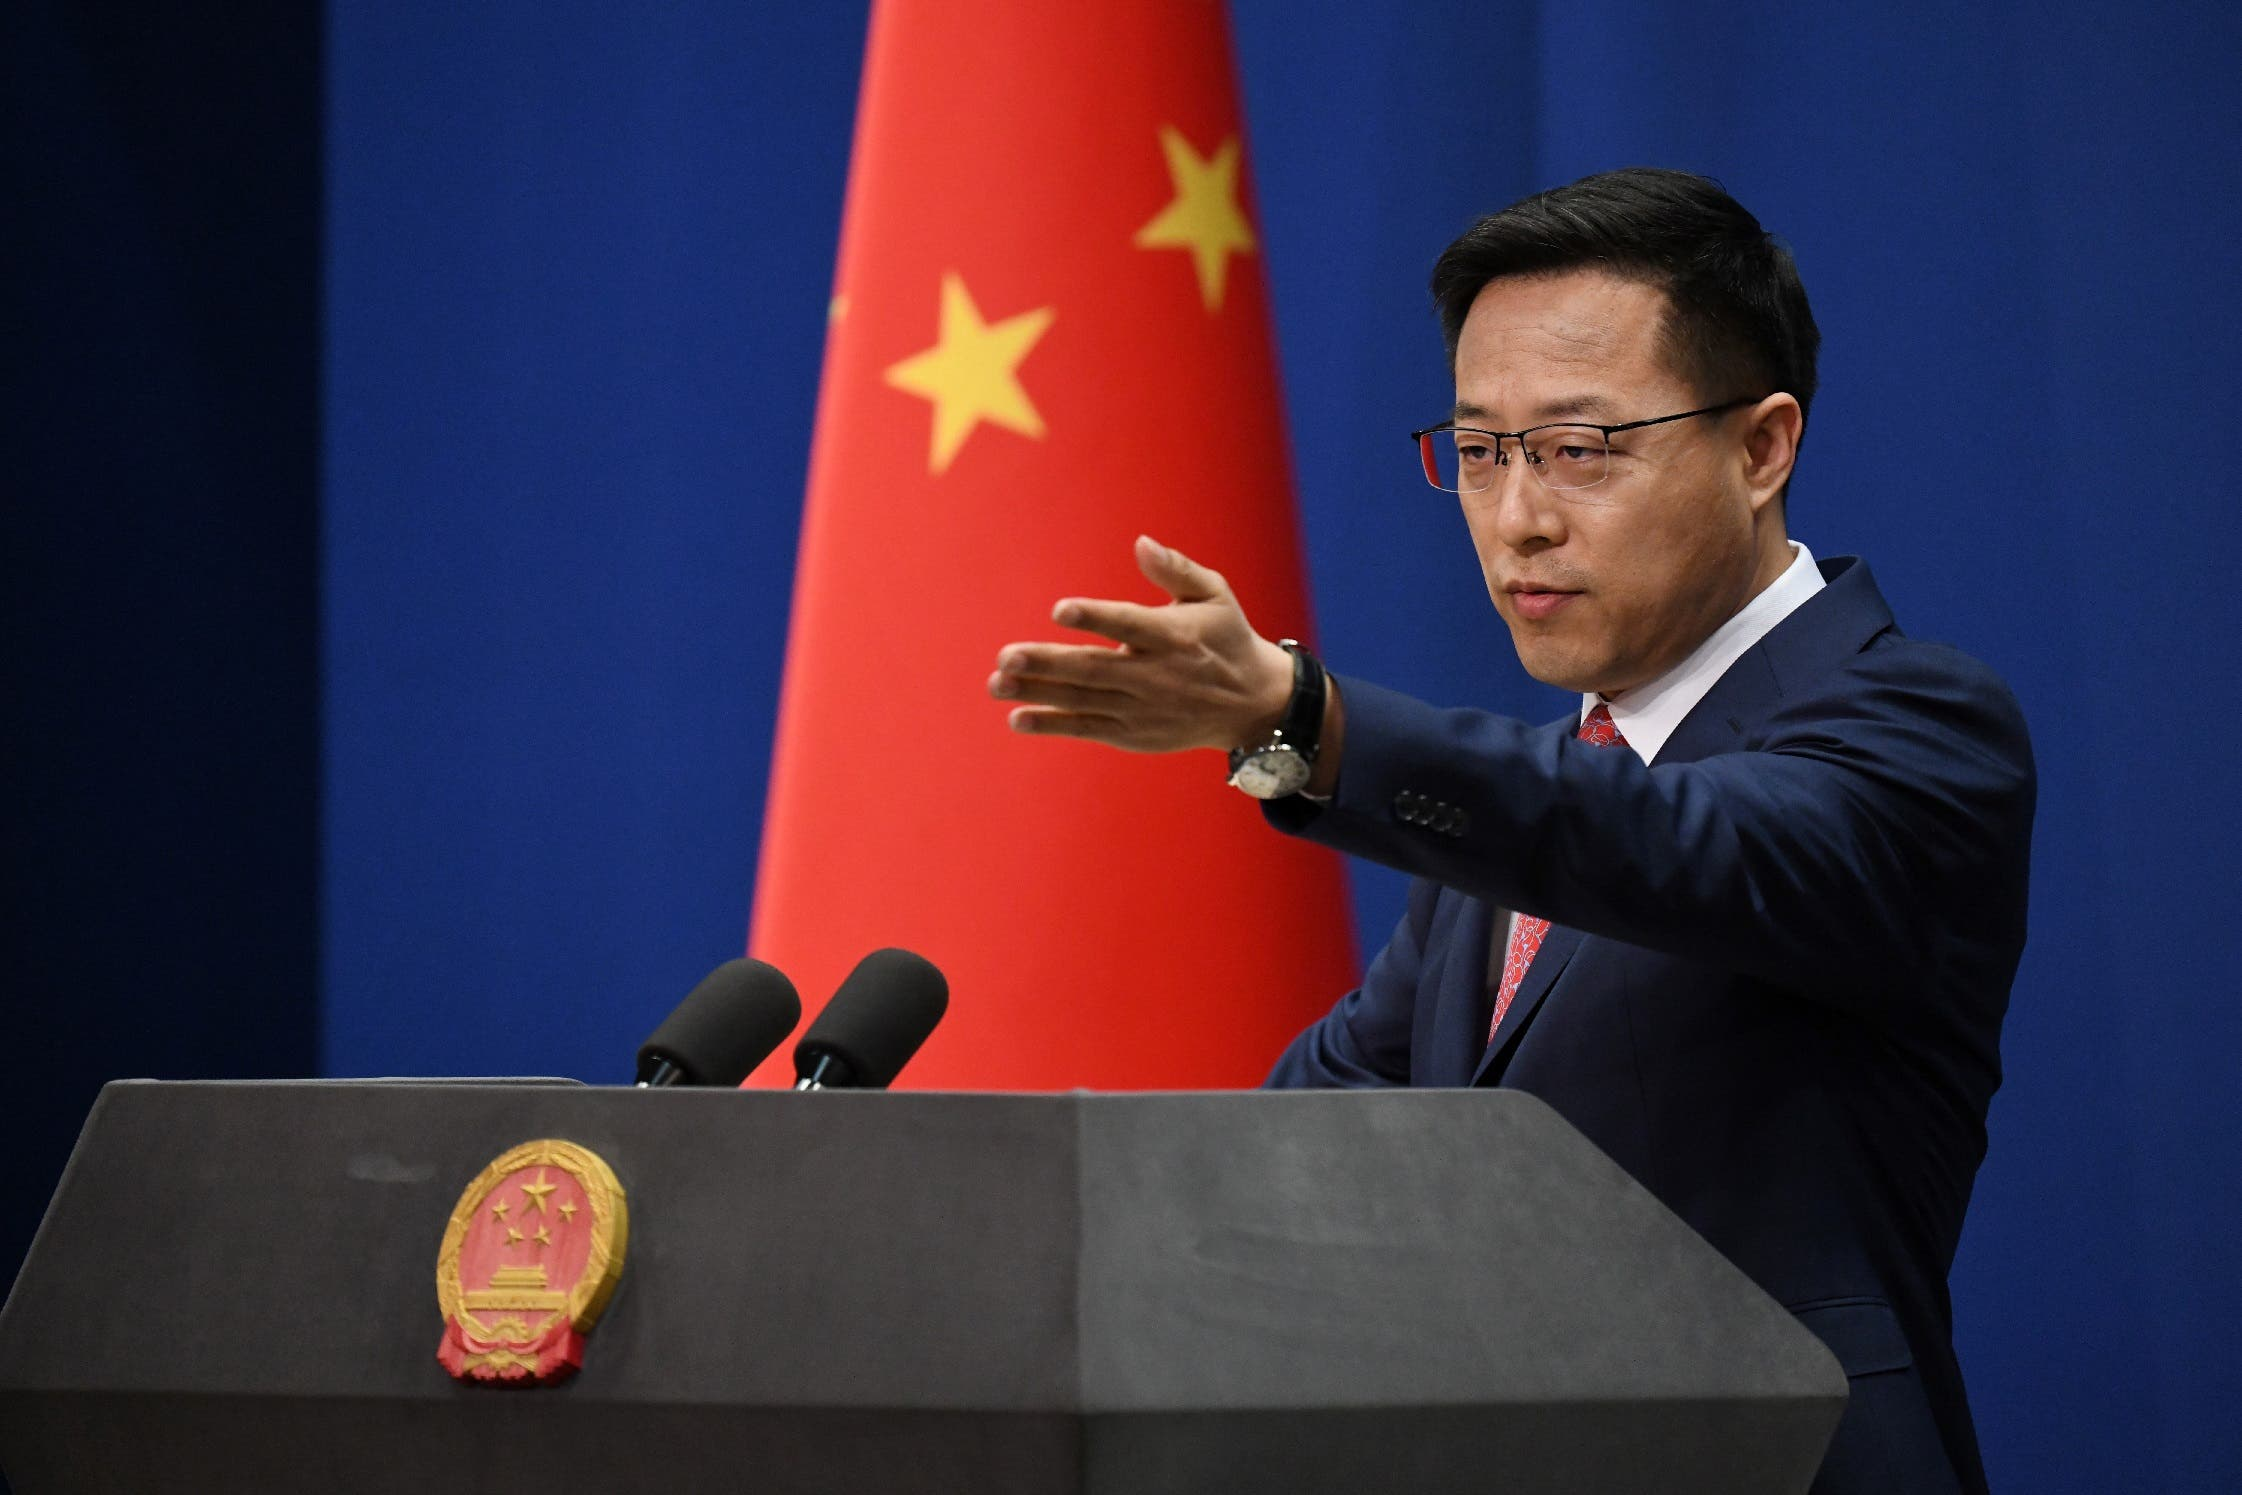 Chinese Foreign Ministry spokesman Zhao Lijian takes a question at the daily media briefing in Beijing on April 8, 2020. (AFP)